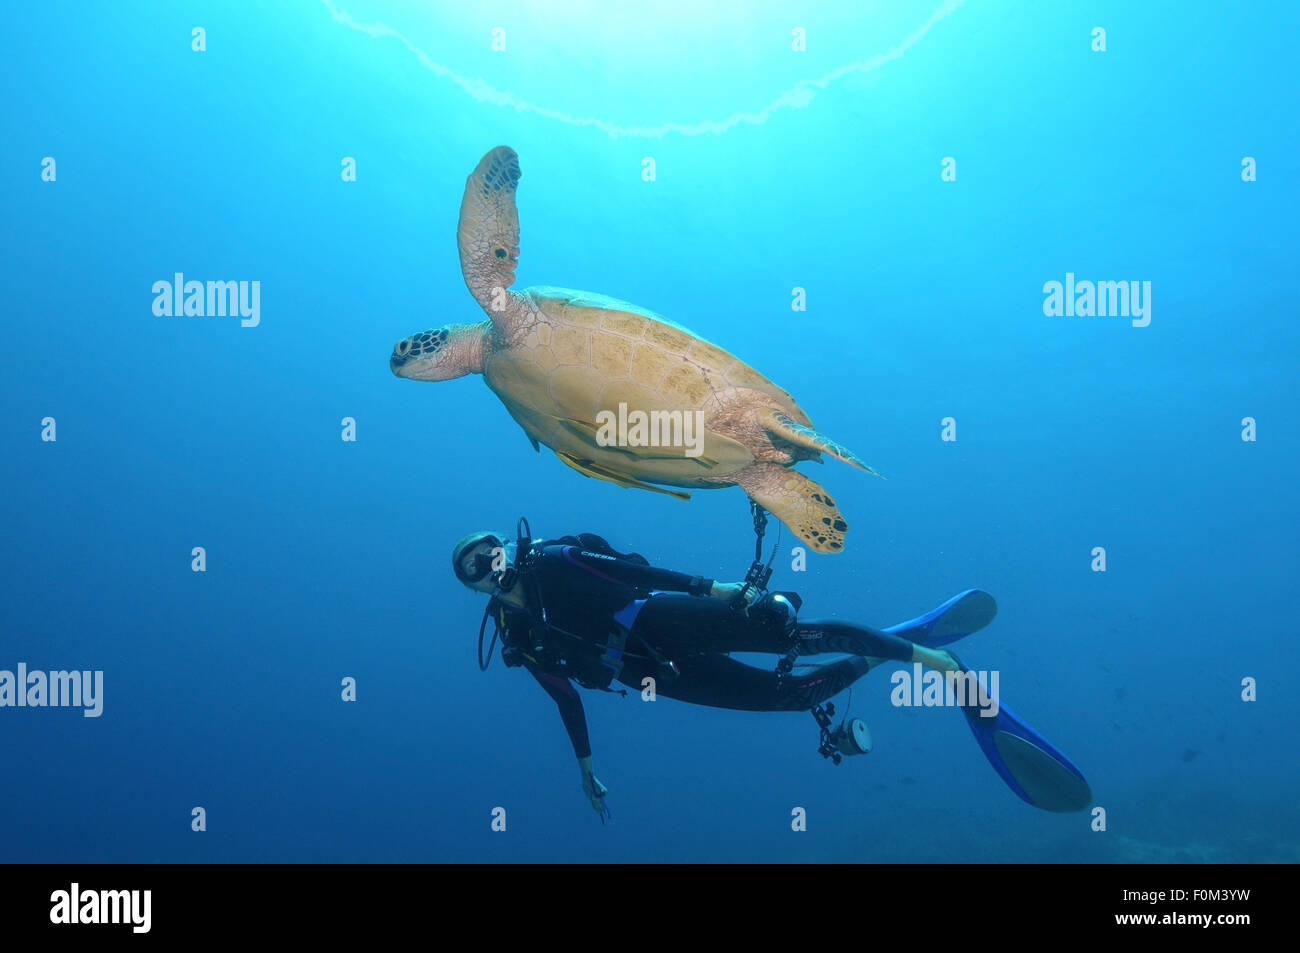 Bohol Sea, Philippines. 15th Oct, 2014. Diver looking at a green sea turtle, green turtle, black sea turtle, or Stock Photo